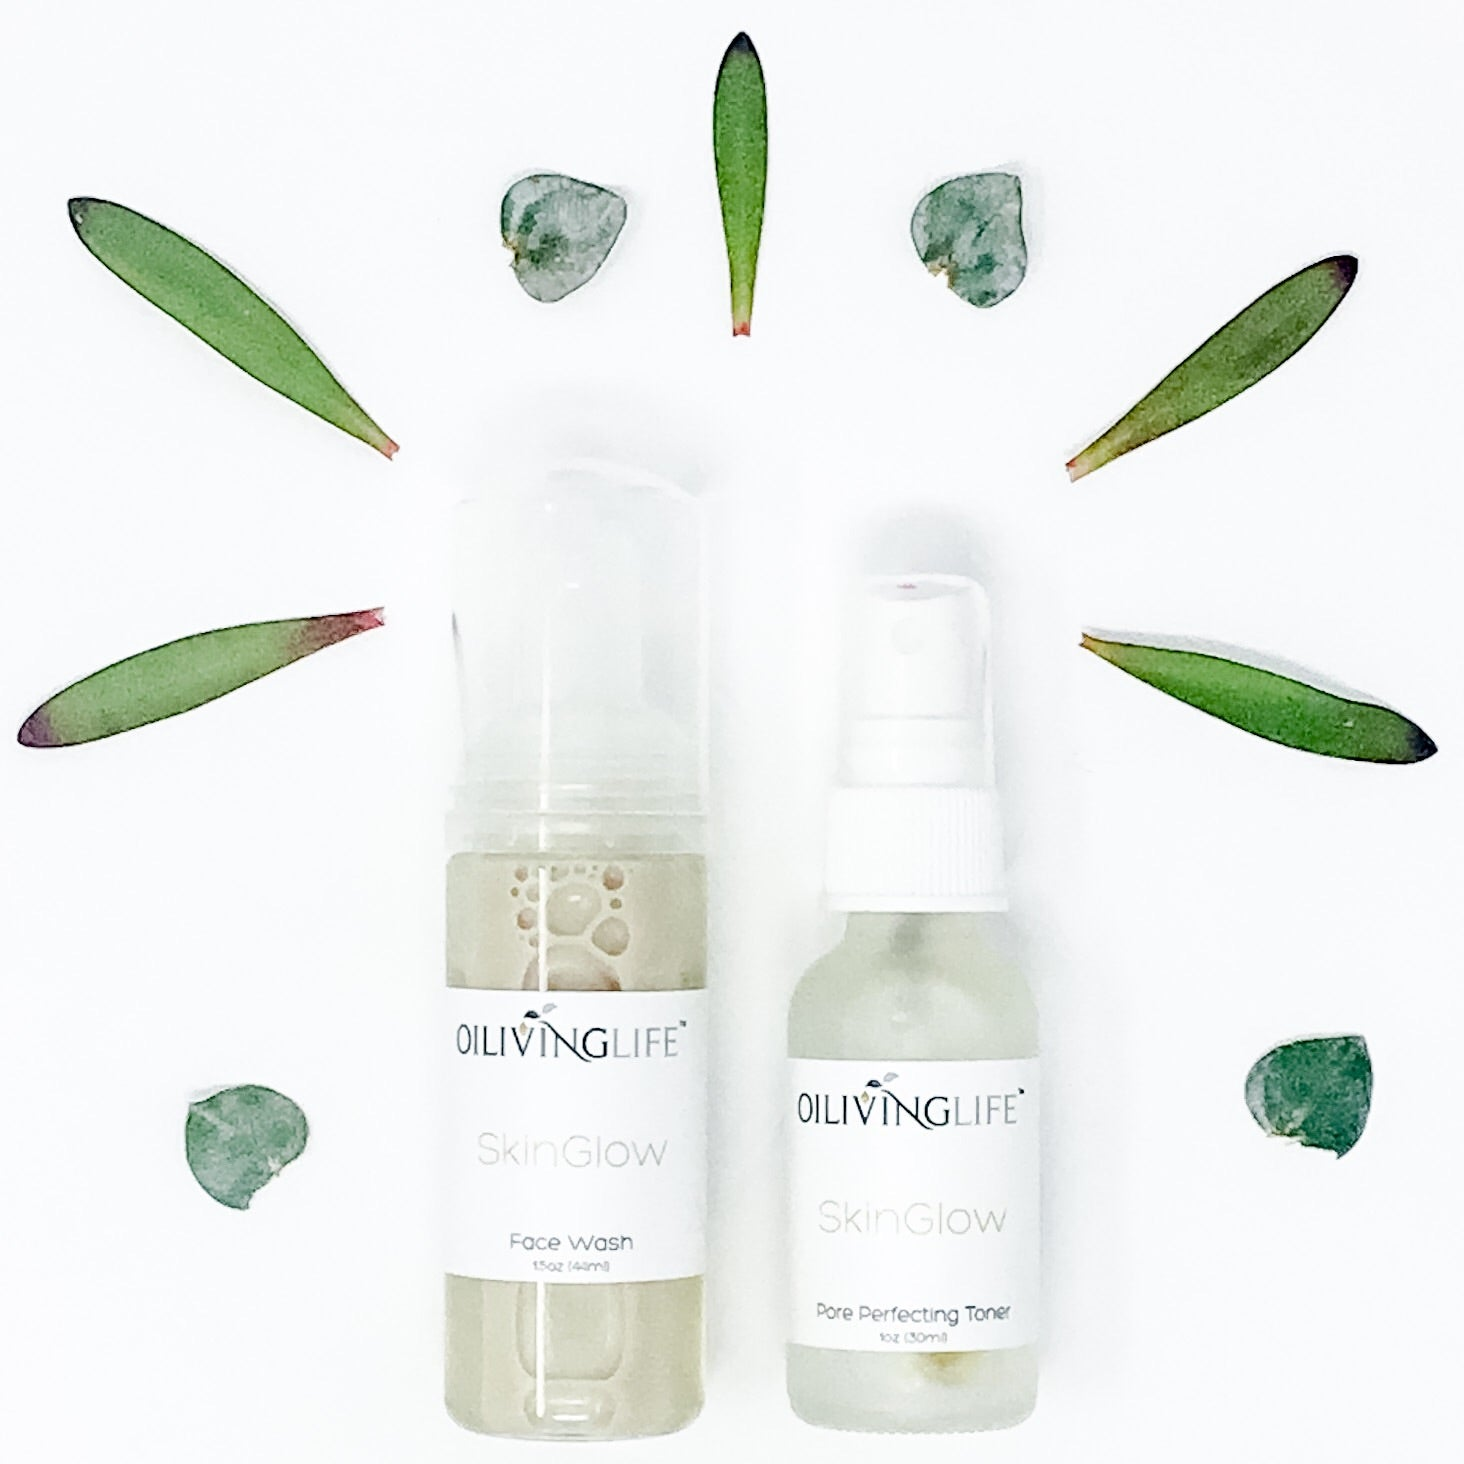 SkinGlow Face Wash & Pore Perfecting Toner Travel Size Kit - OilivingLife